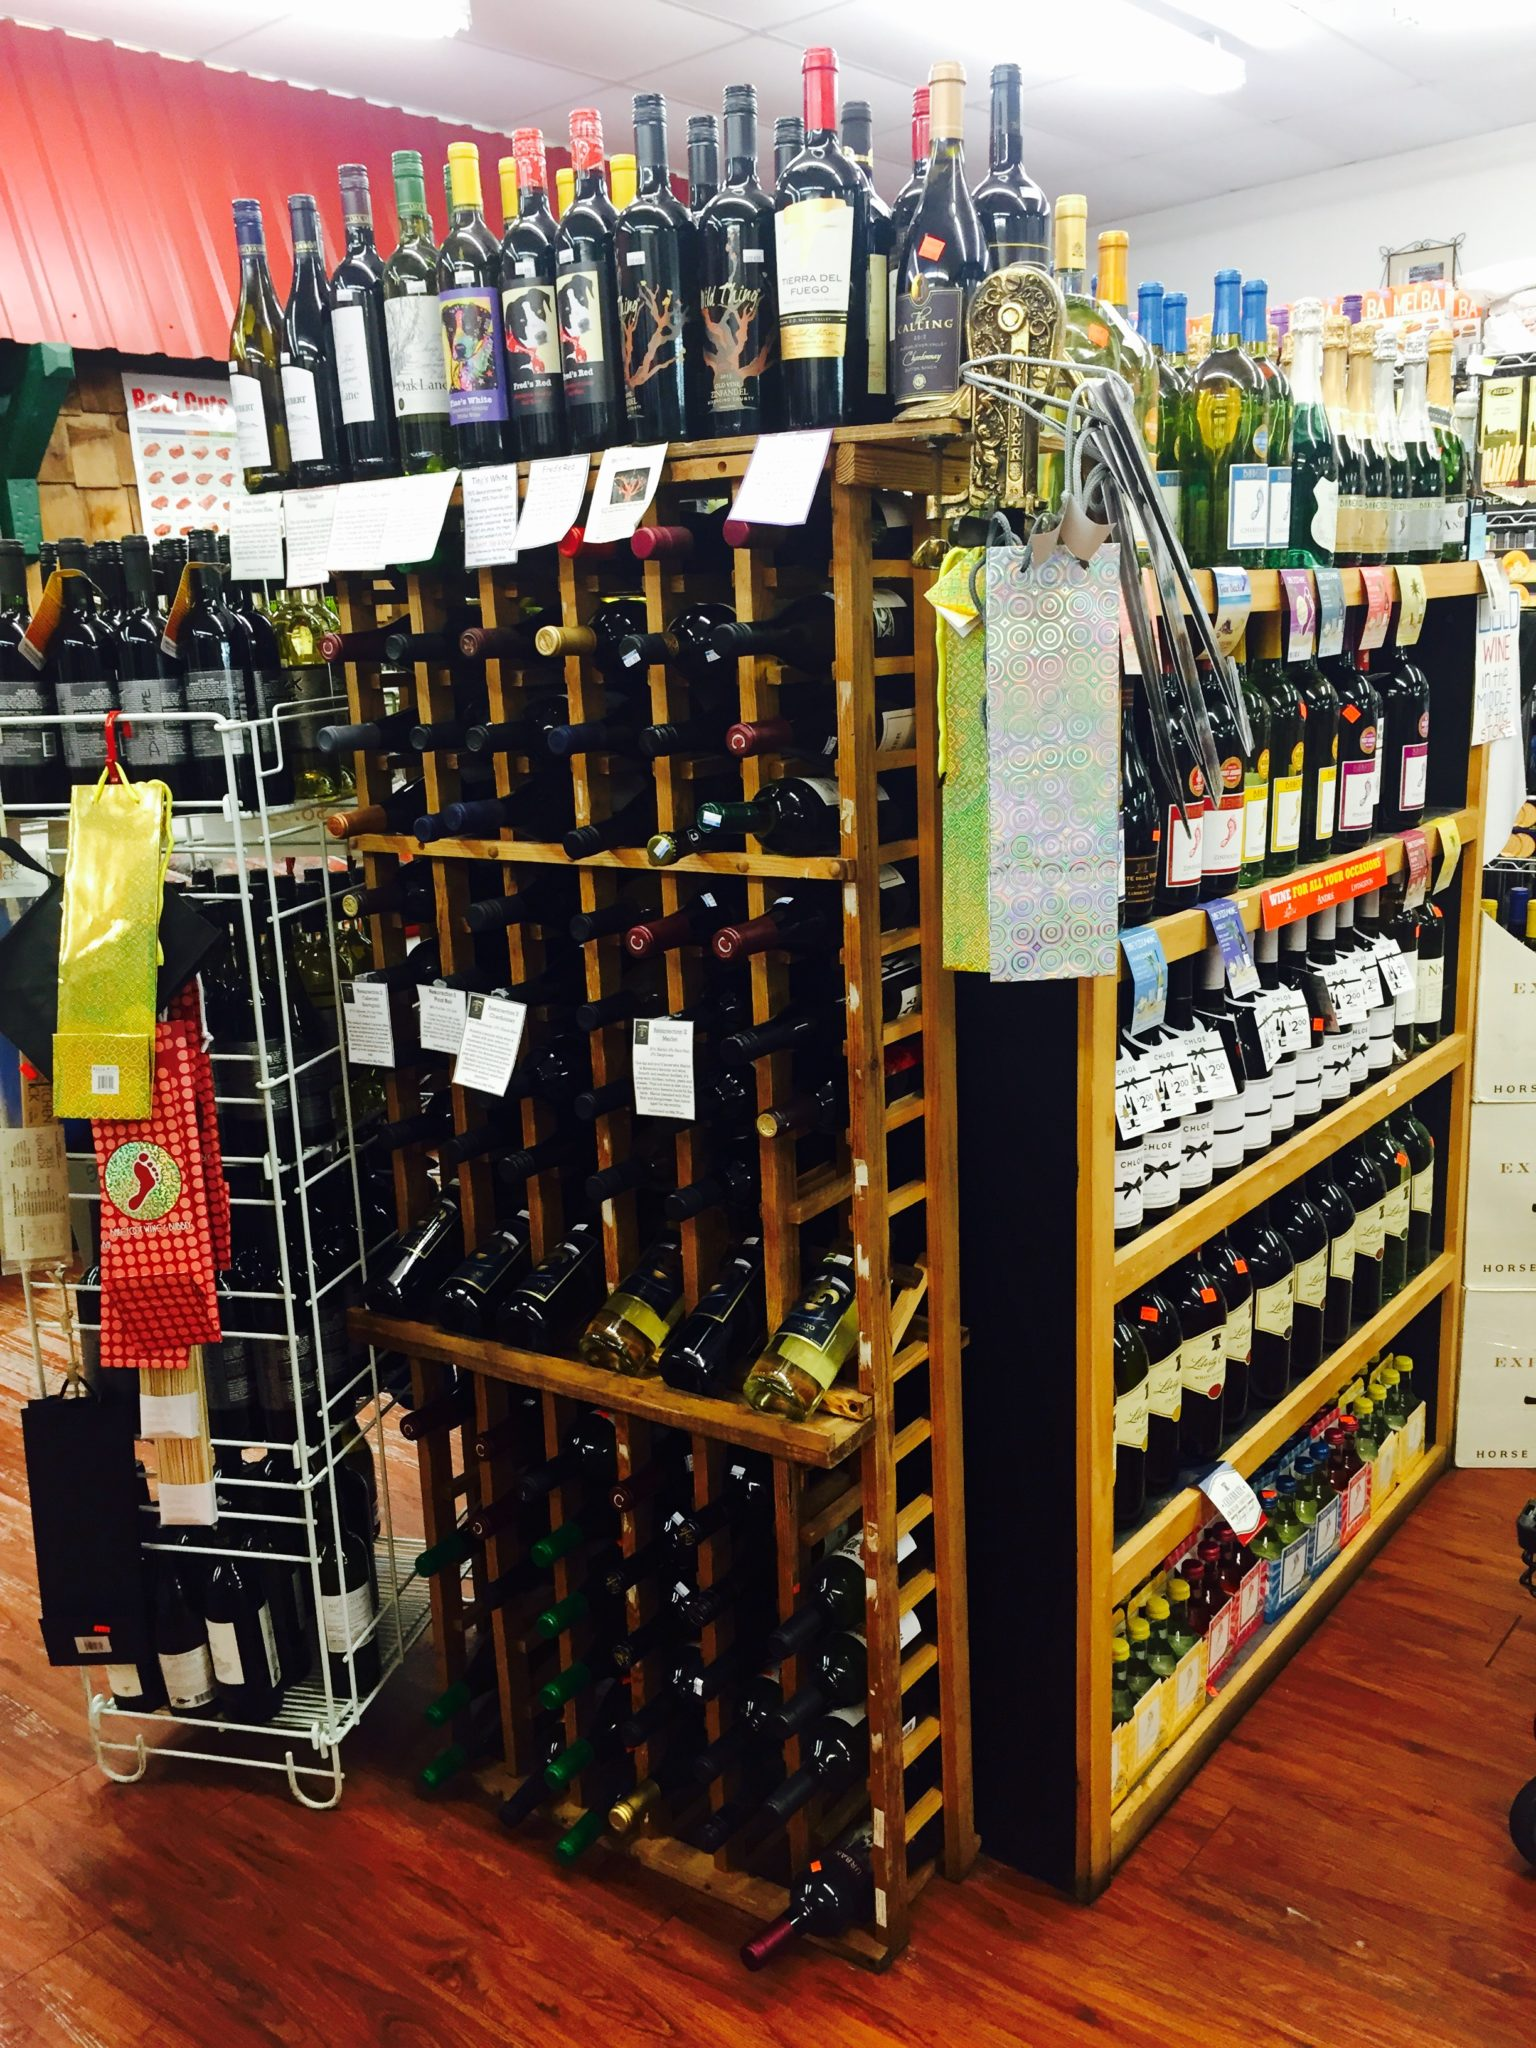 Wine Racks at Apple Market